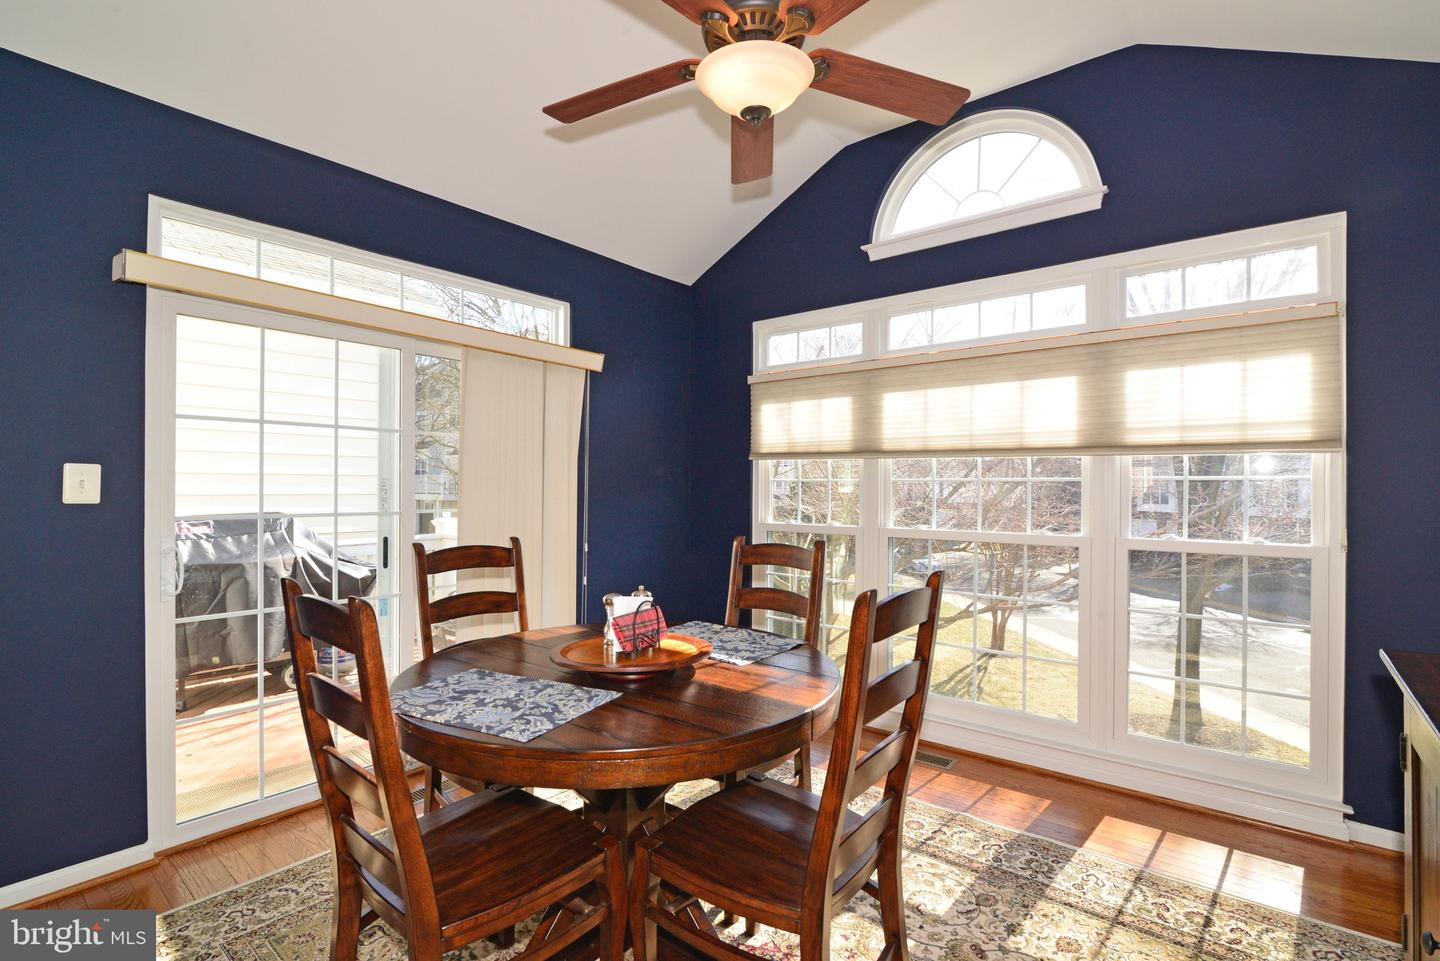 Other Residential for Sale at 12171 Tryton Way 12171 Tryton Way Reston, Virginia 20190 United States